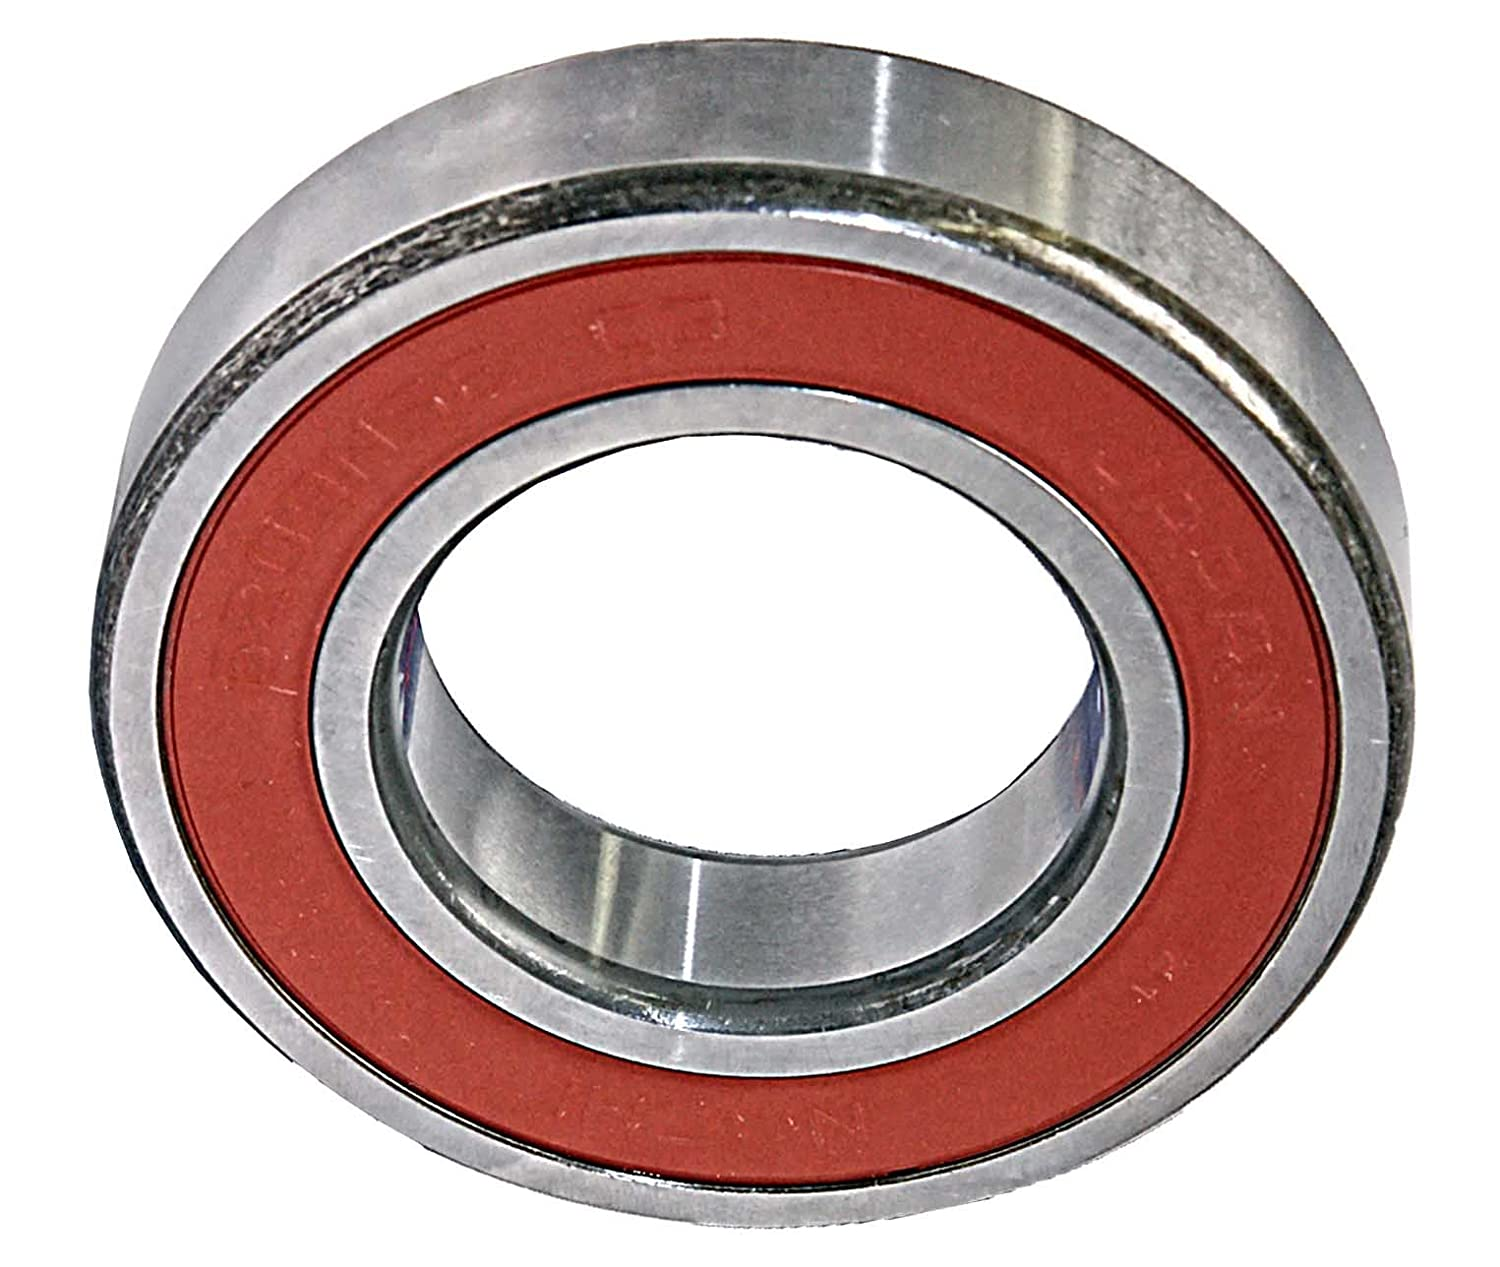 6006-RS1 Radial Ball Bearing Double Sealed Bore Dia 30mm OD 55mm Width 13mm